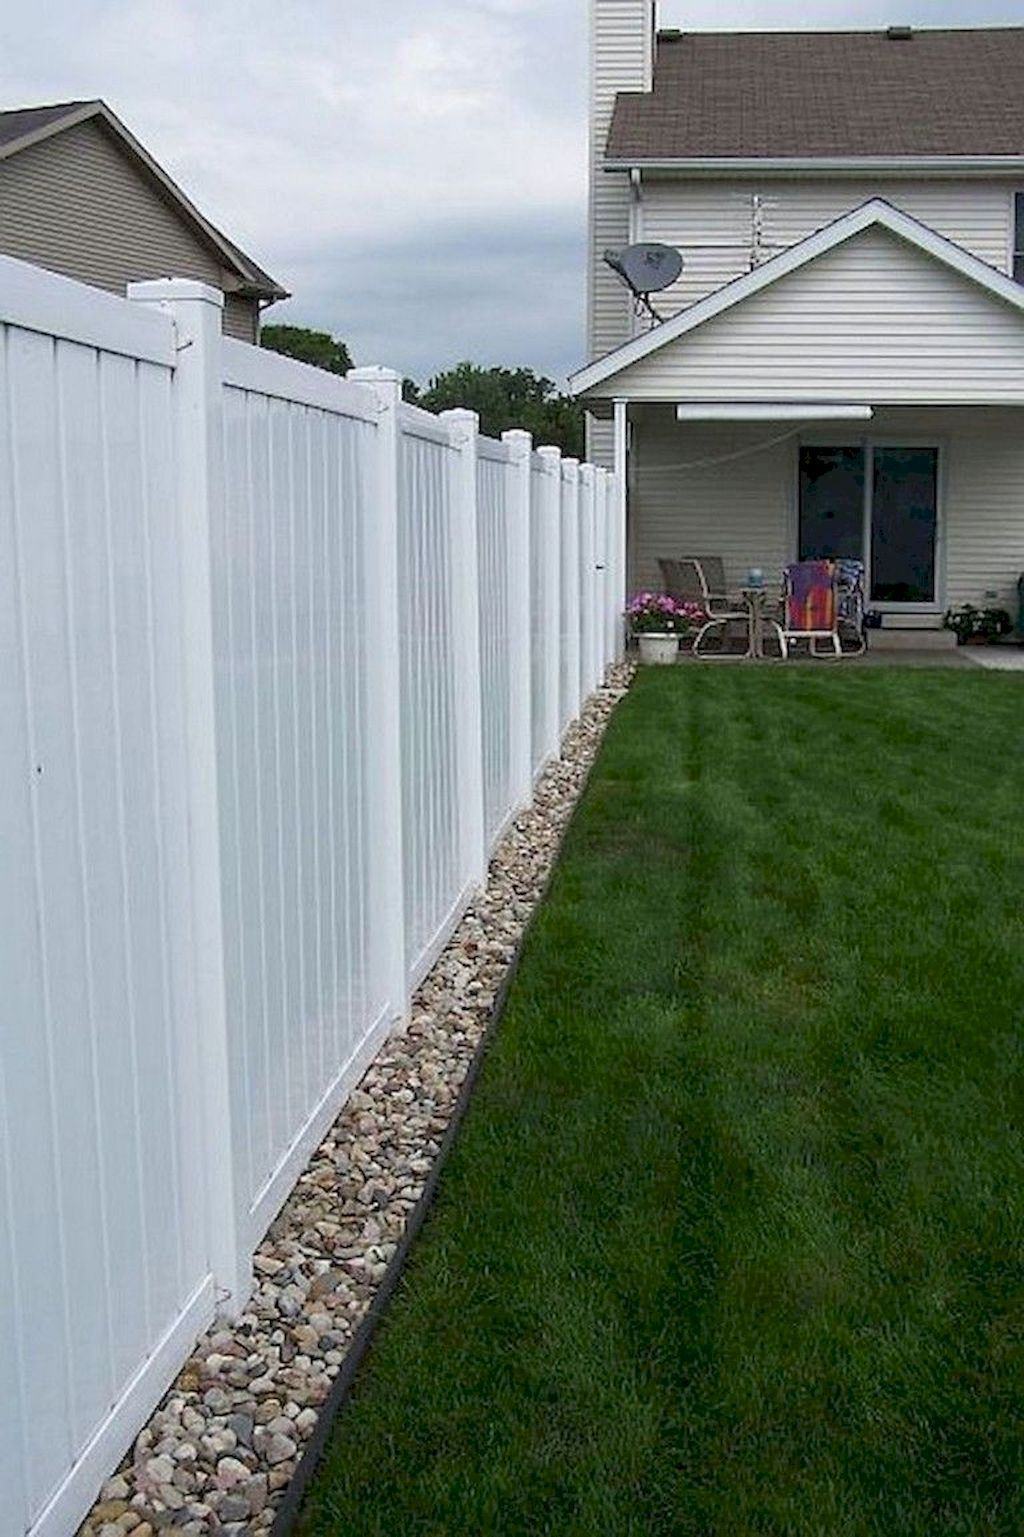 70 Brilliant Privacy Fence Ideas That Add Curb Appeal To Your